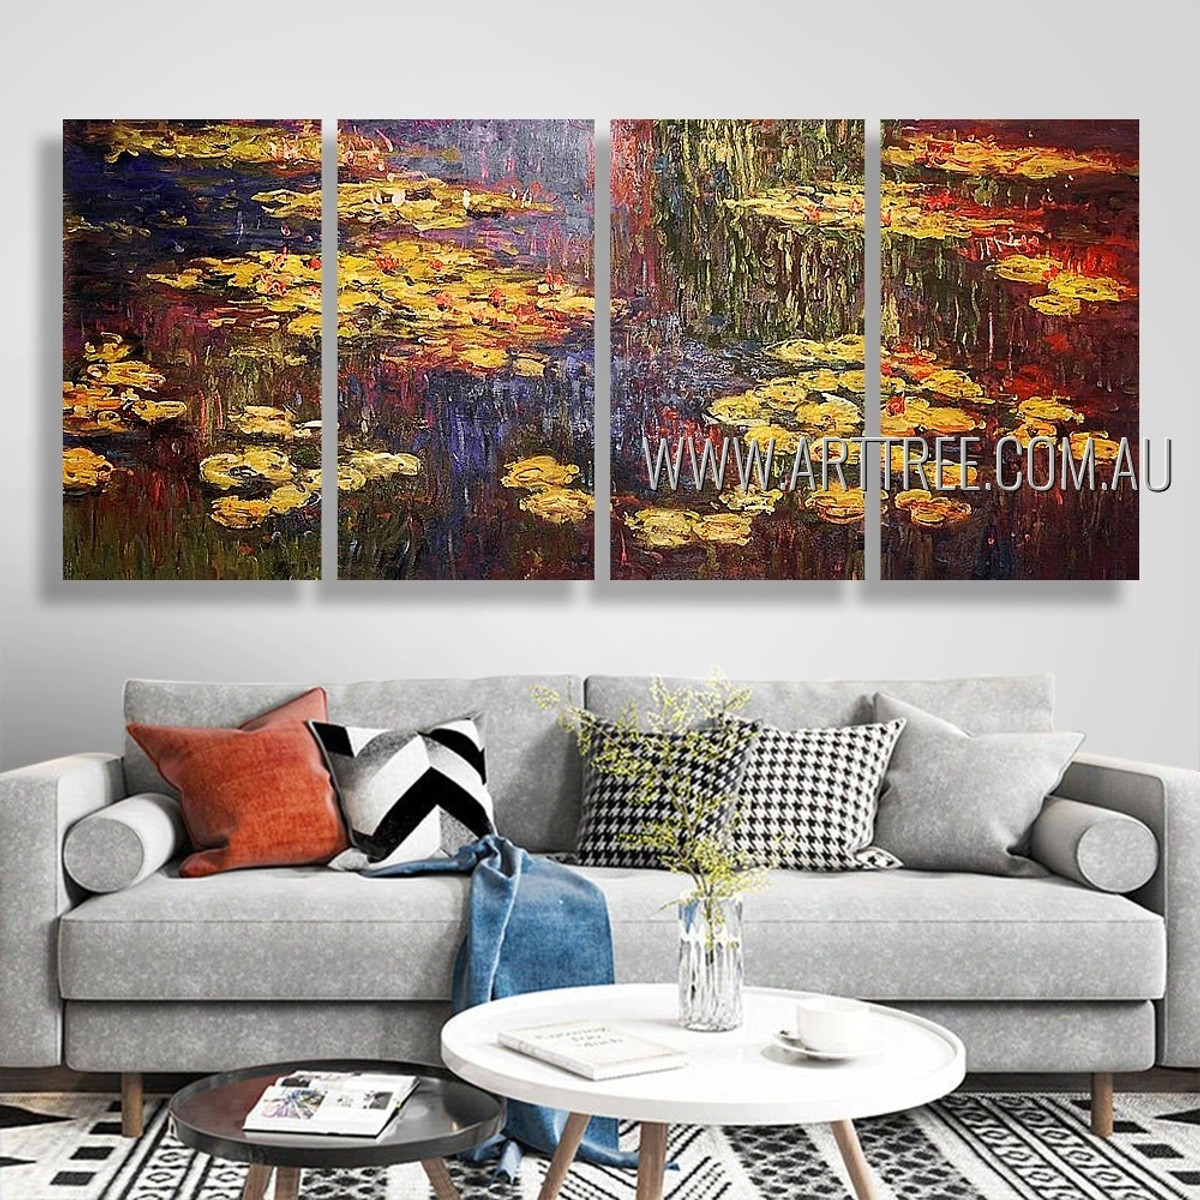 Water Lilies Landscape Vintage Heavy Texture Handmade 4 Piece Split Canvas Paintings Wall Art Set For Room Disposition